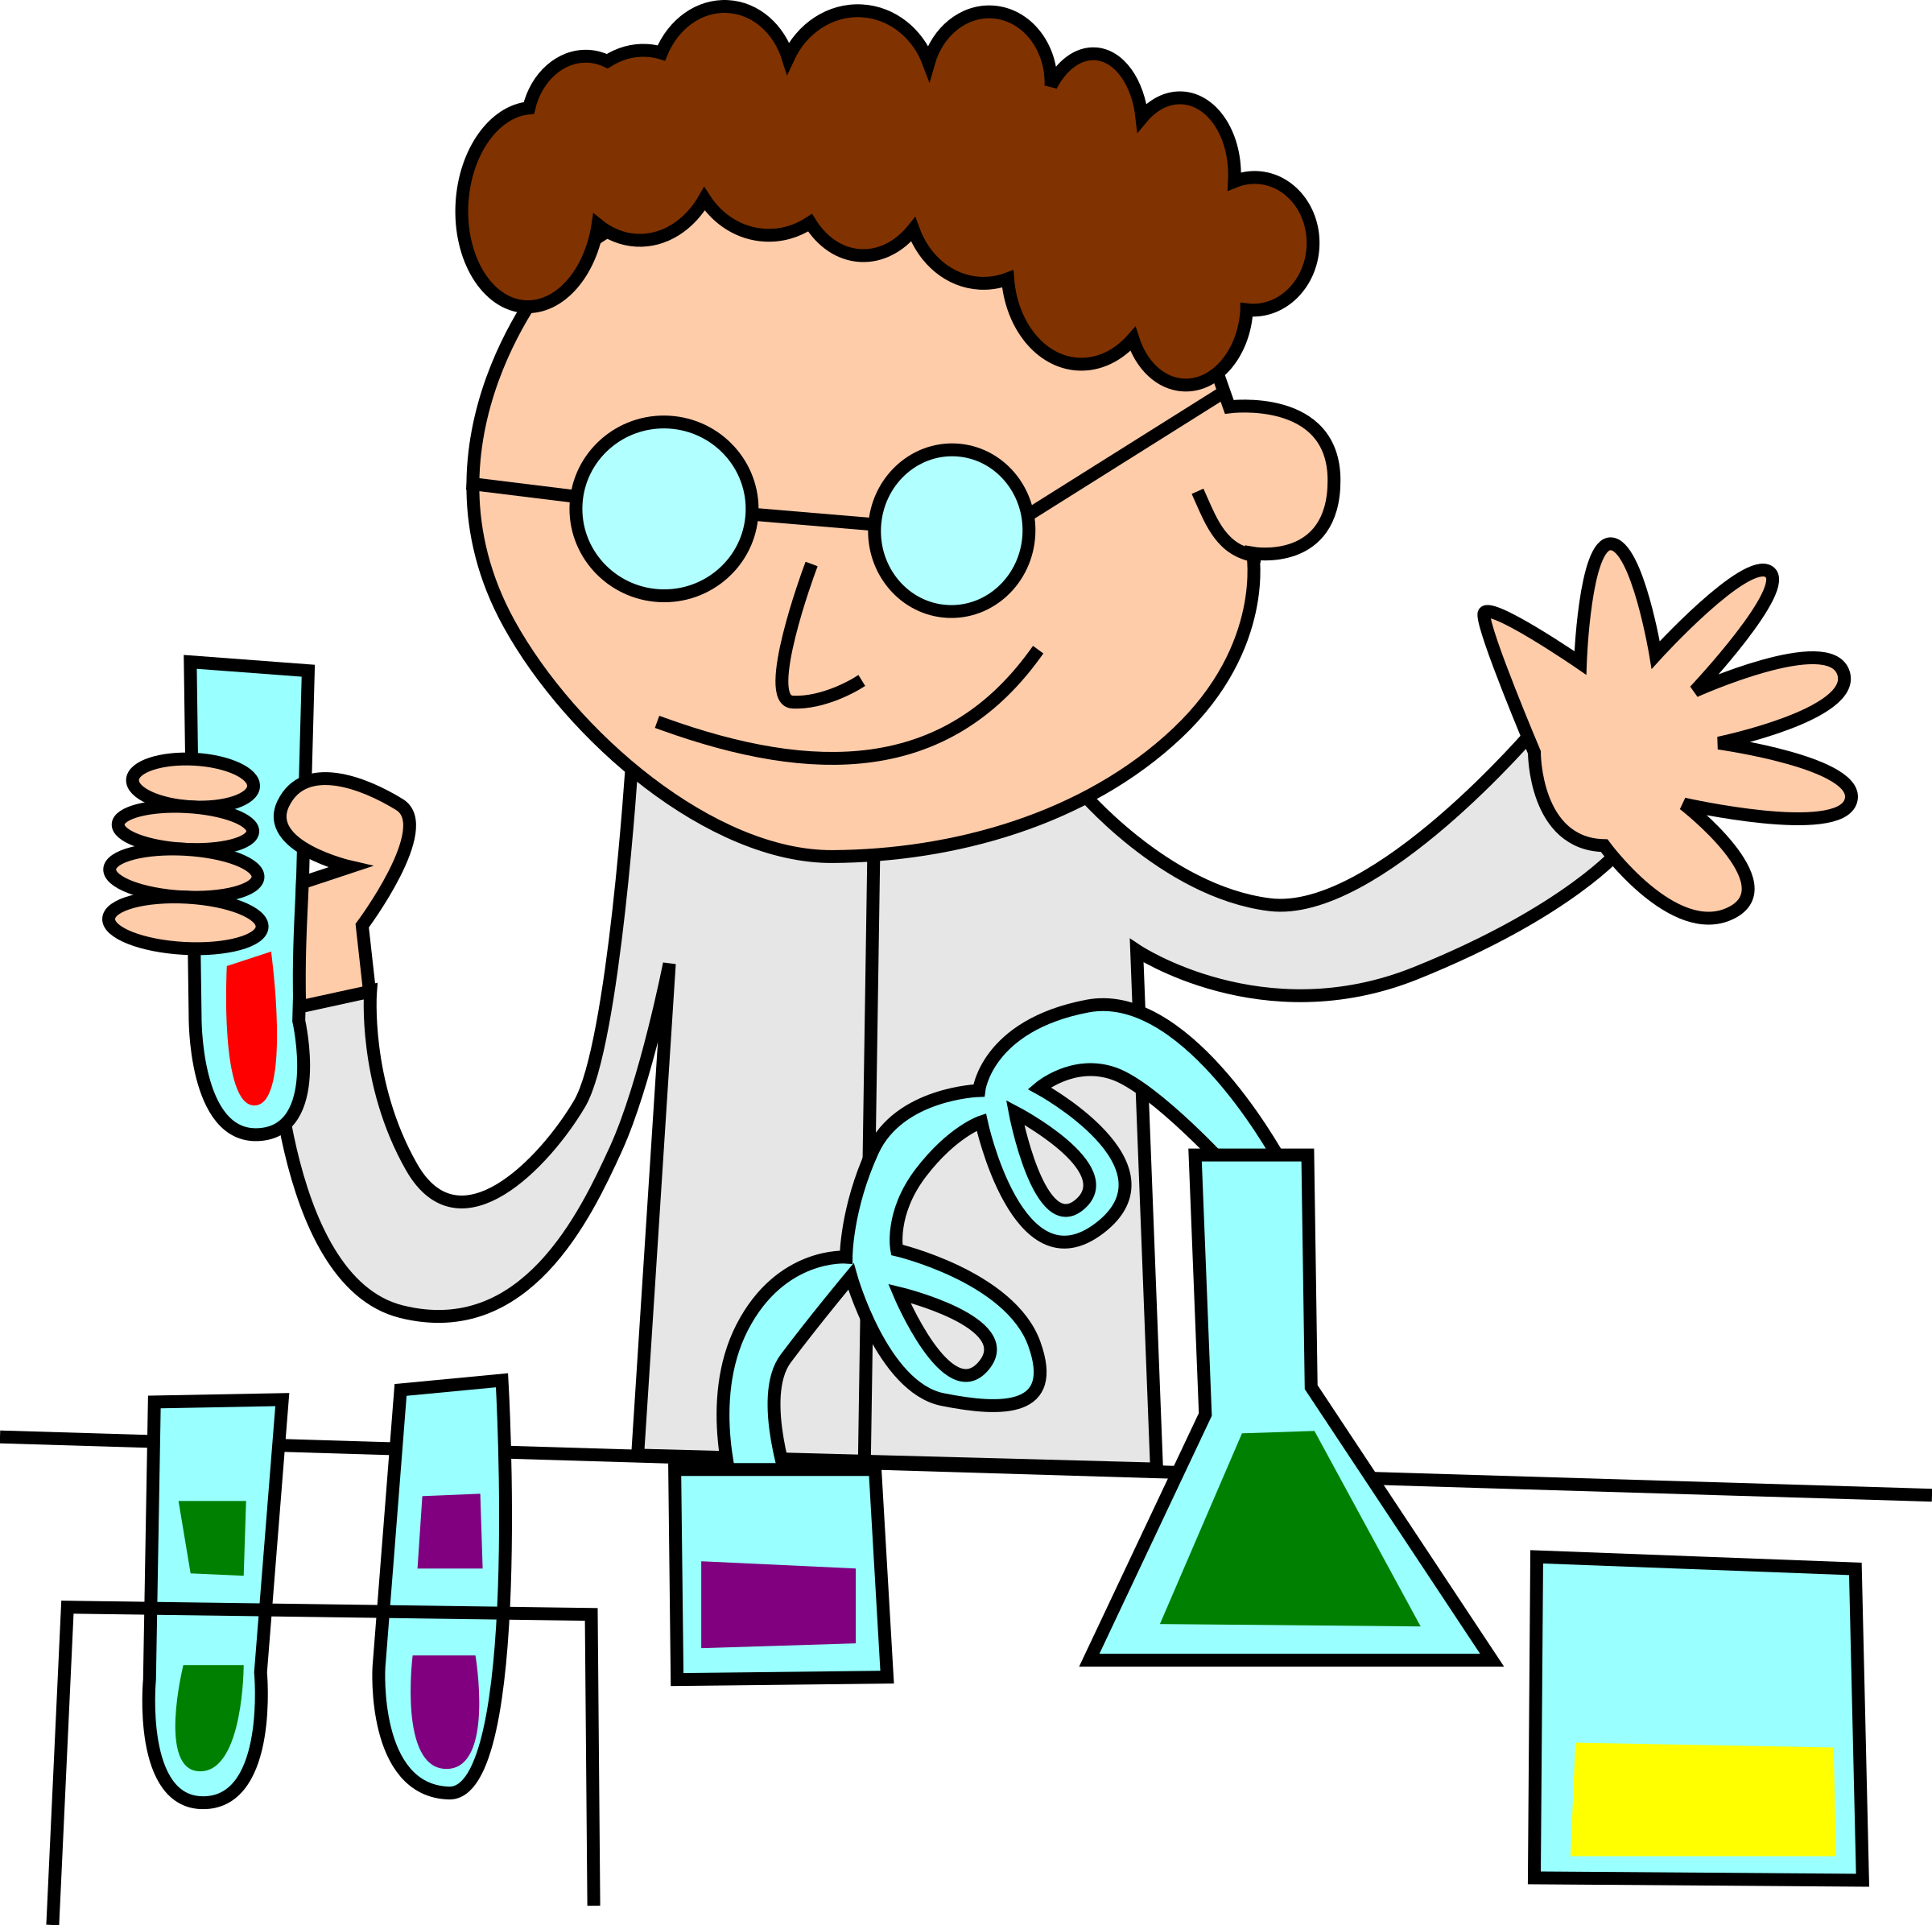 Photo lab clipart clip download Chemist in lab vector clipart image - Free stock photo ... clip download